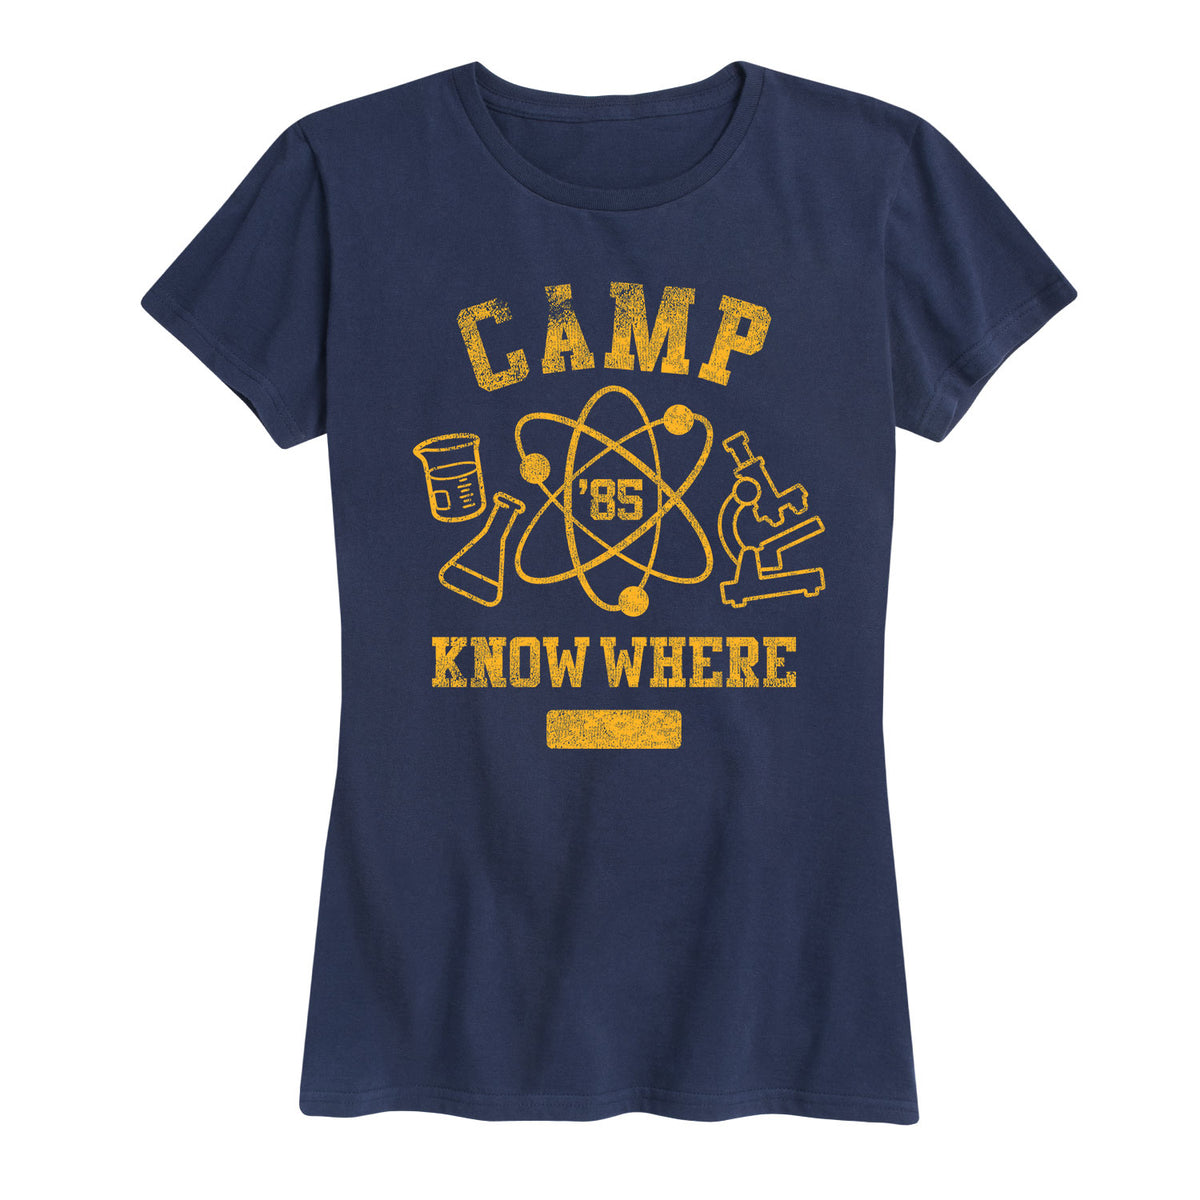 Camp Know Where - Women's Short Sleeve T-Shirt